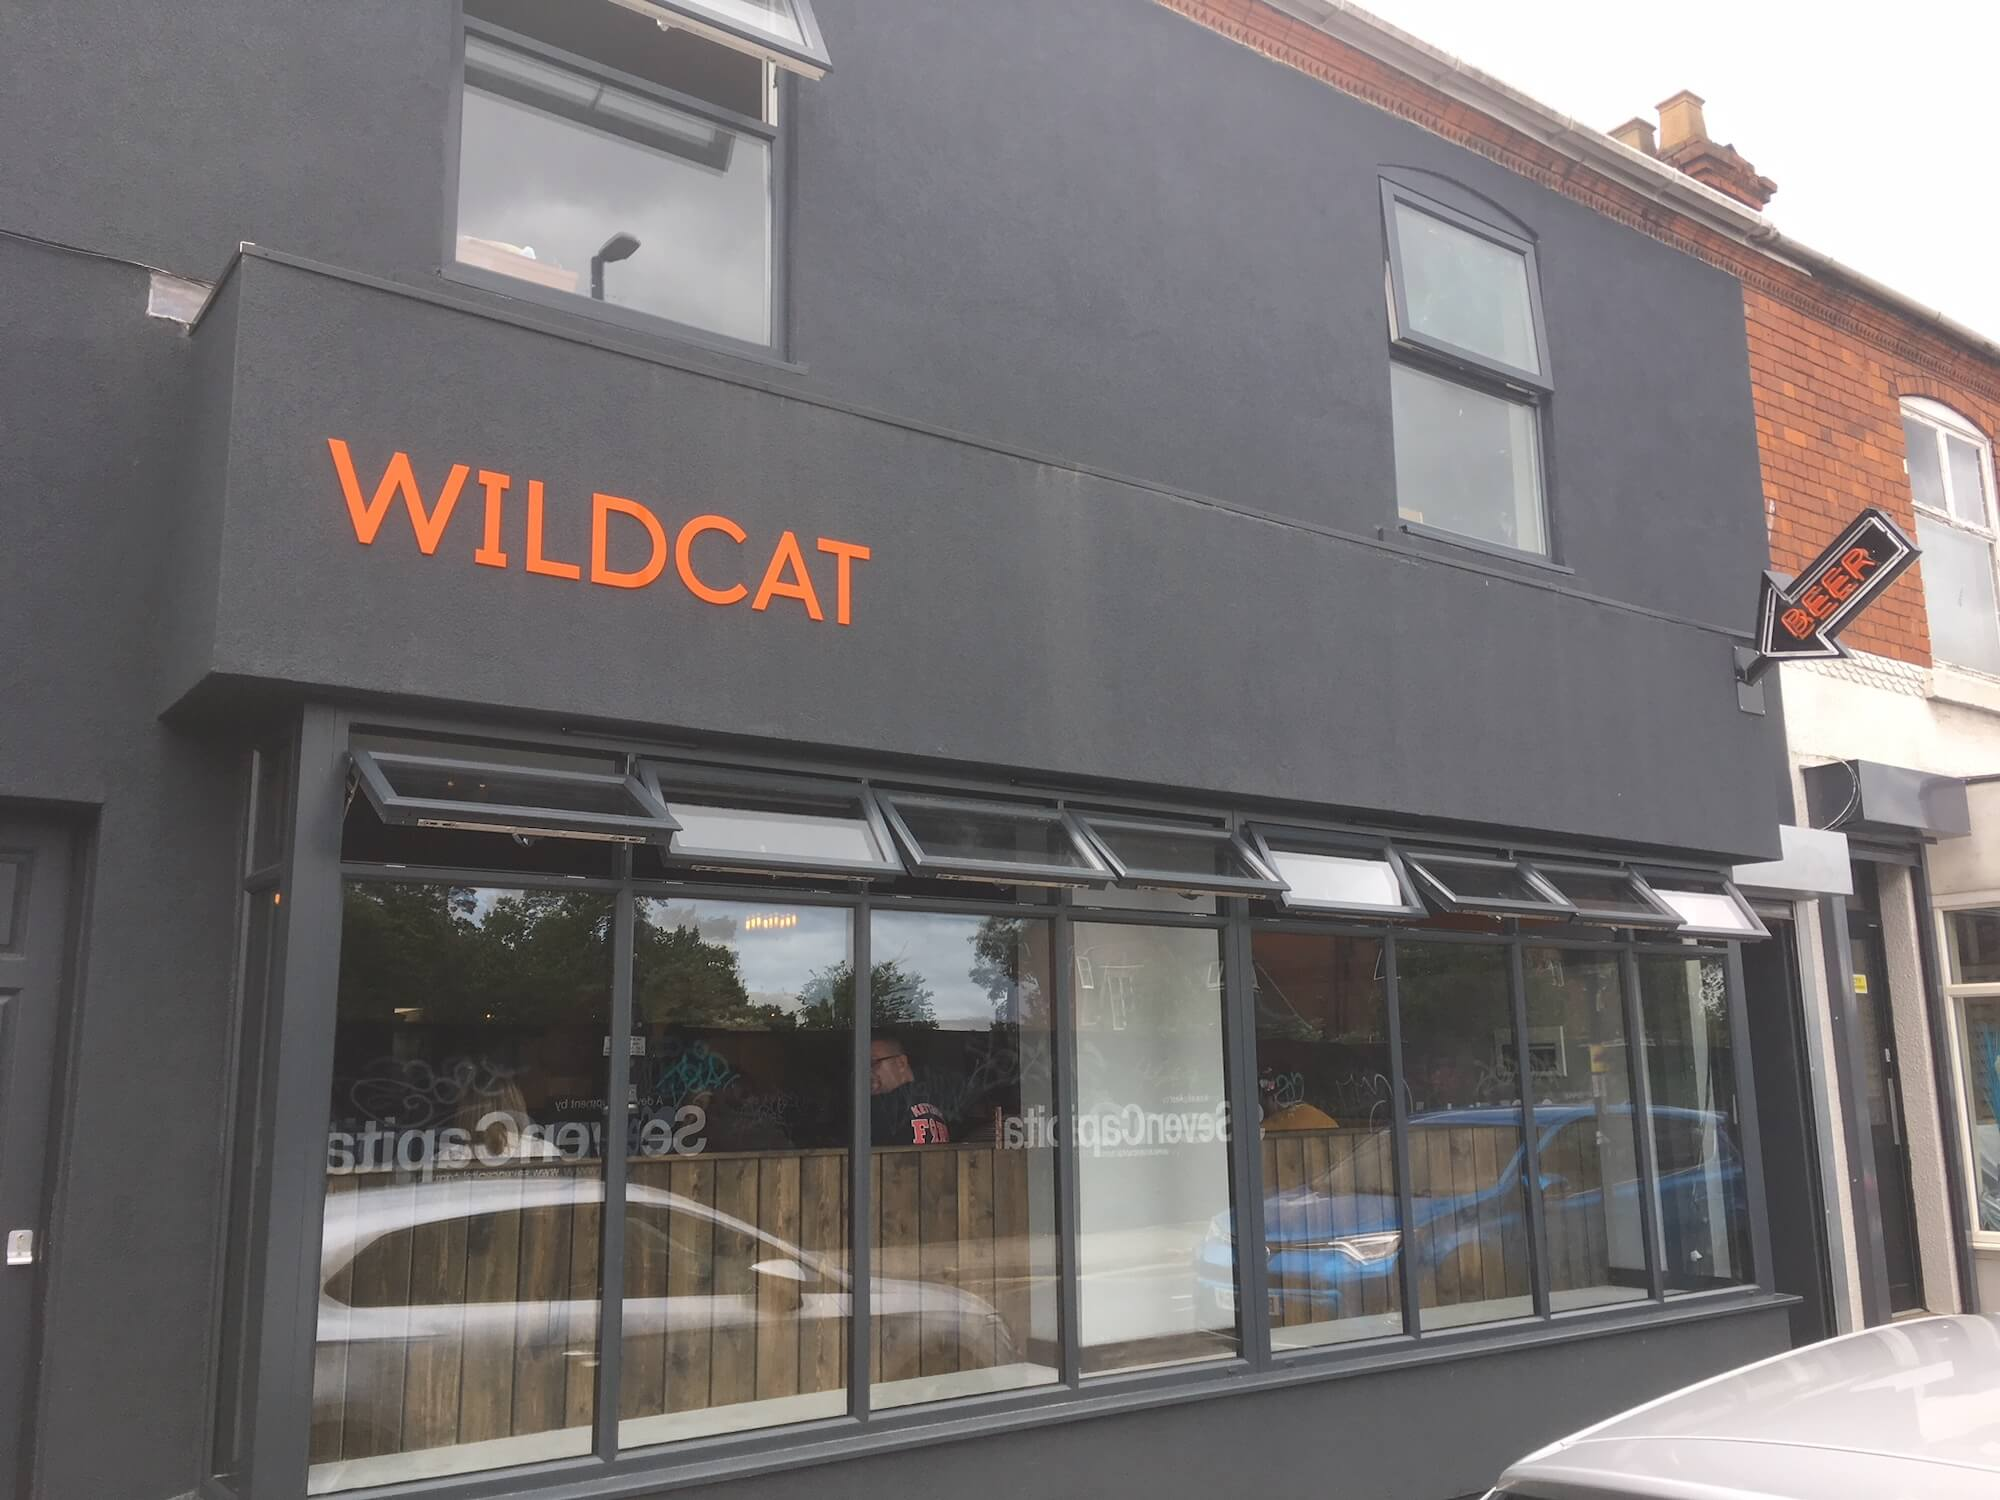 The Wildcat Tap